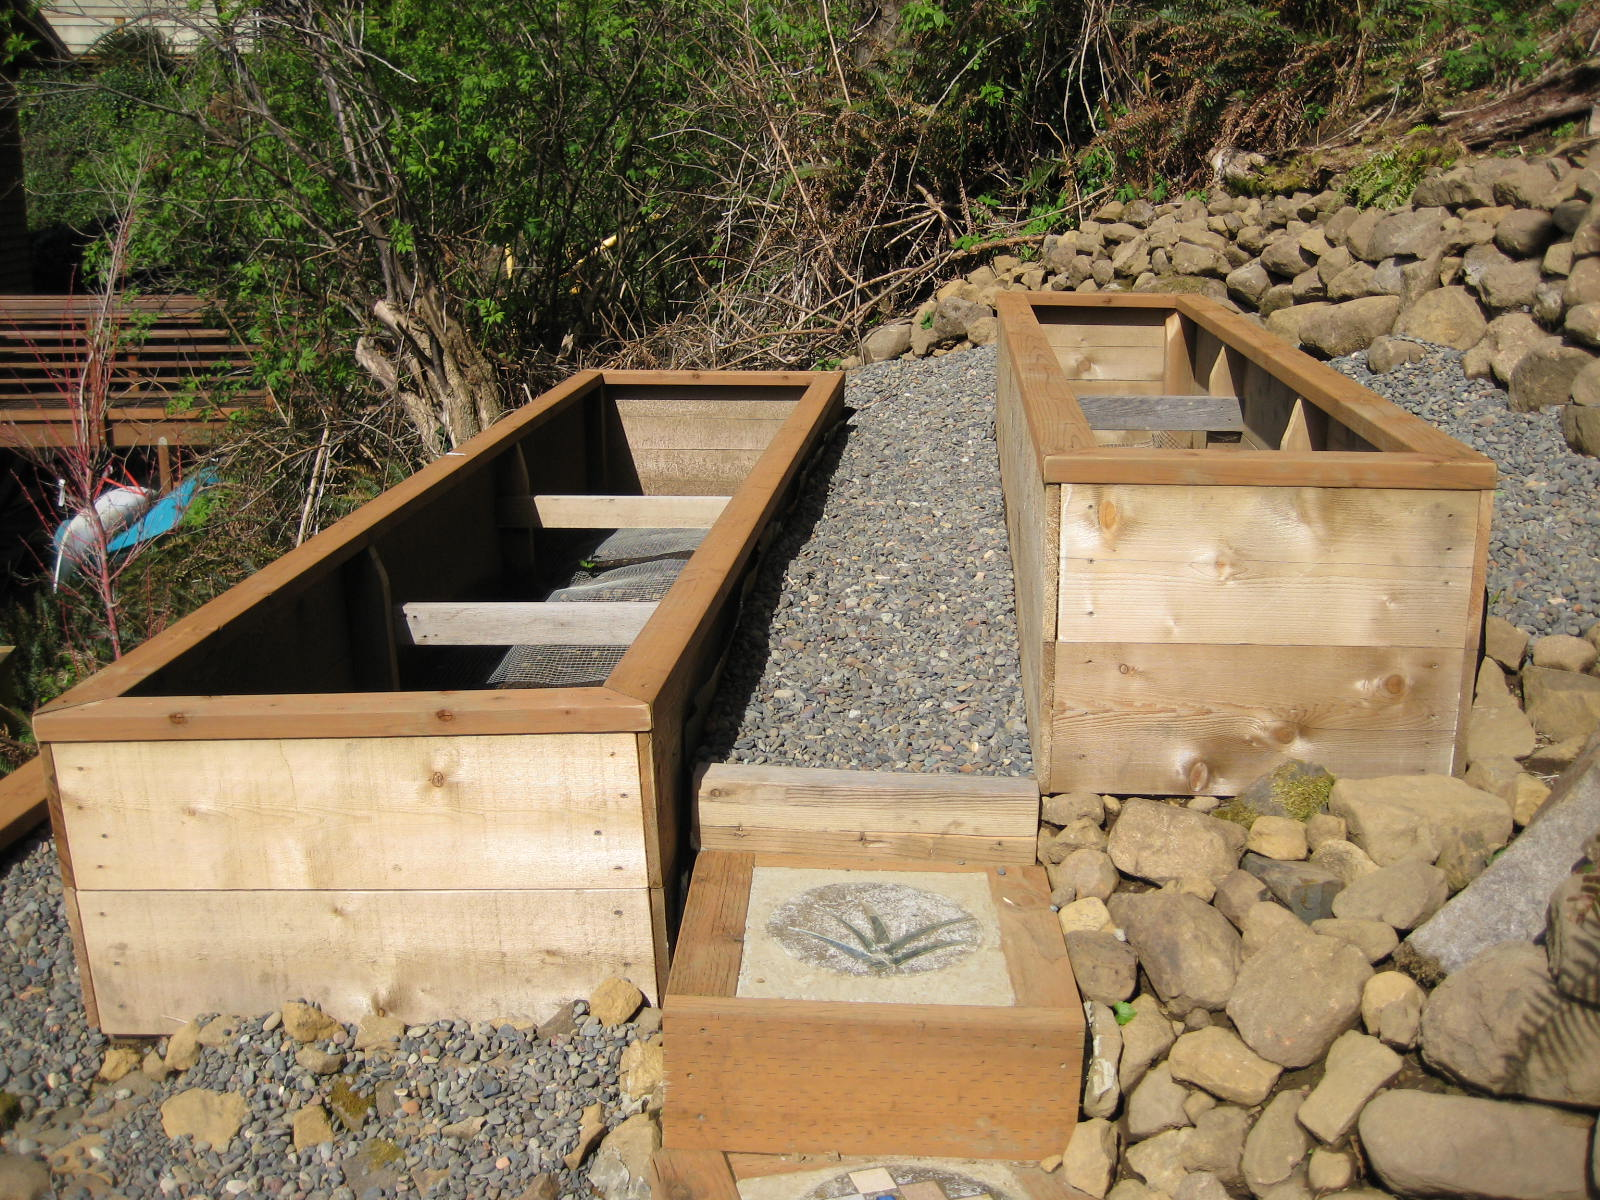 How To Build Raised Garden Beds On A Hillside Designs